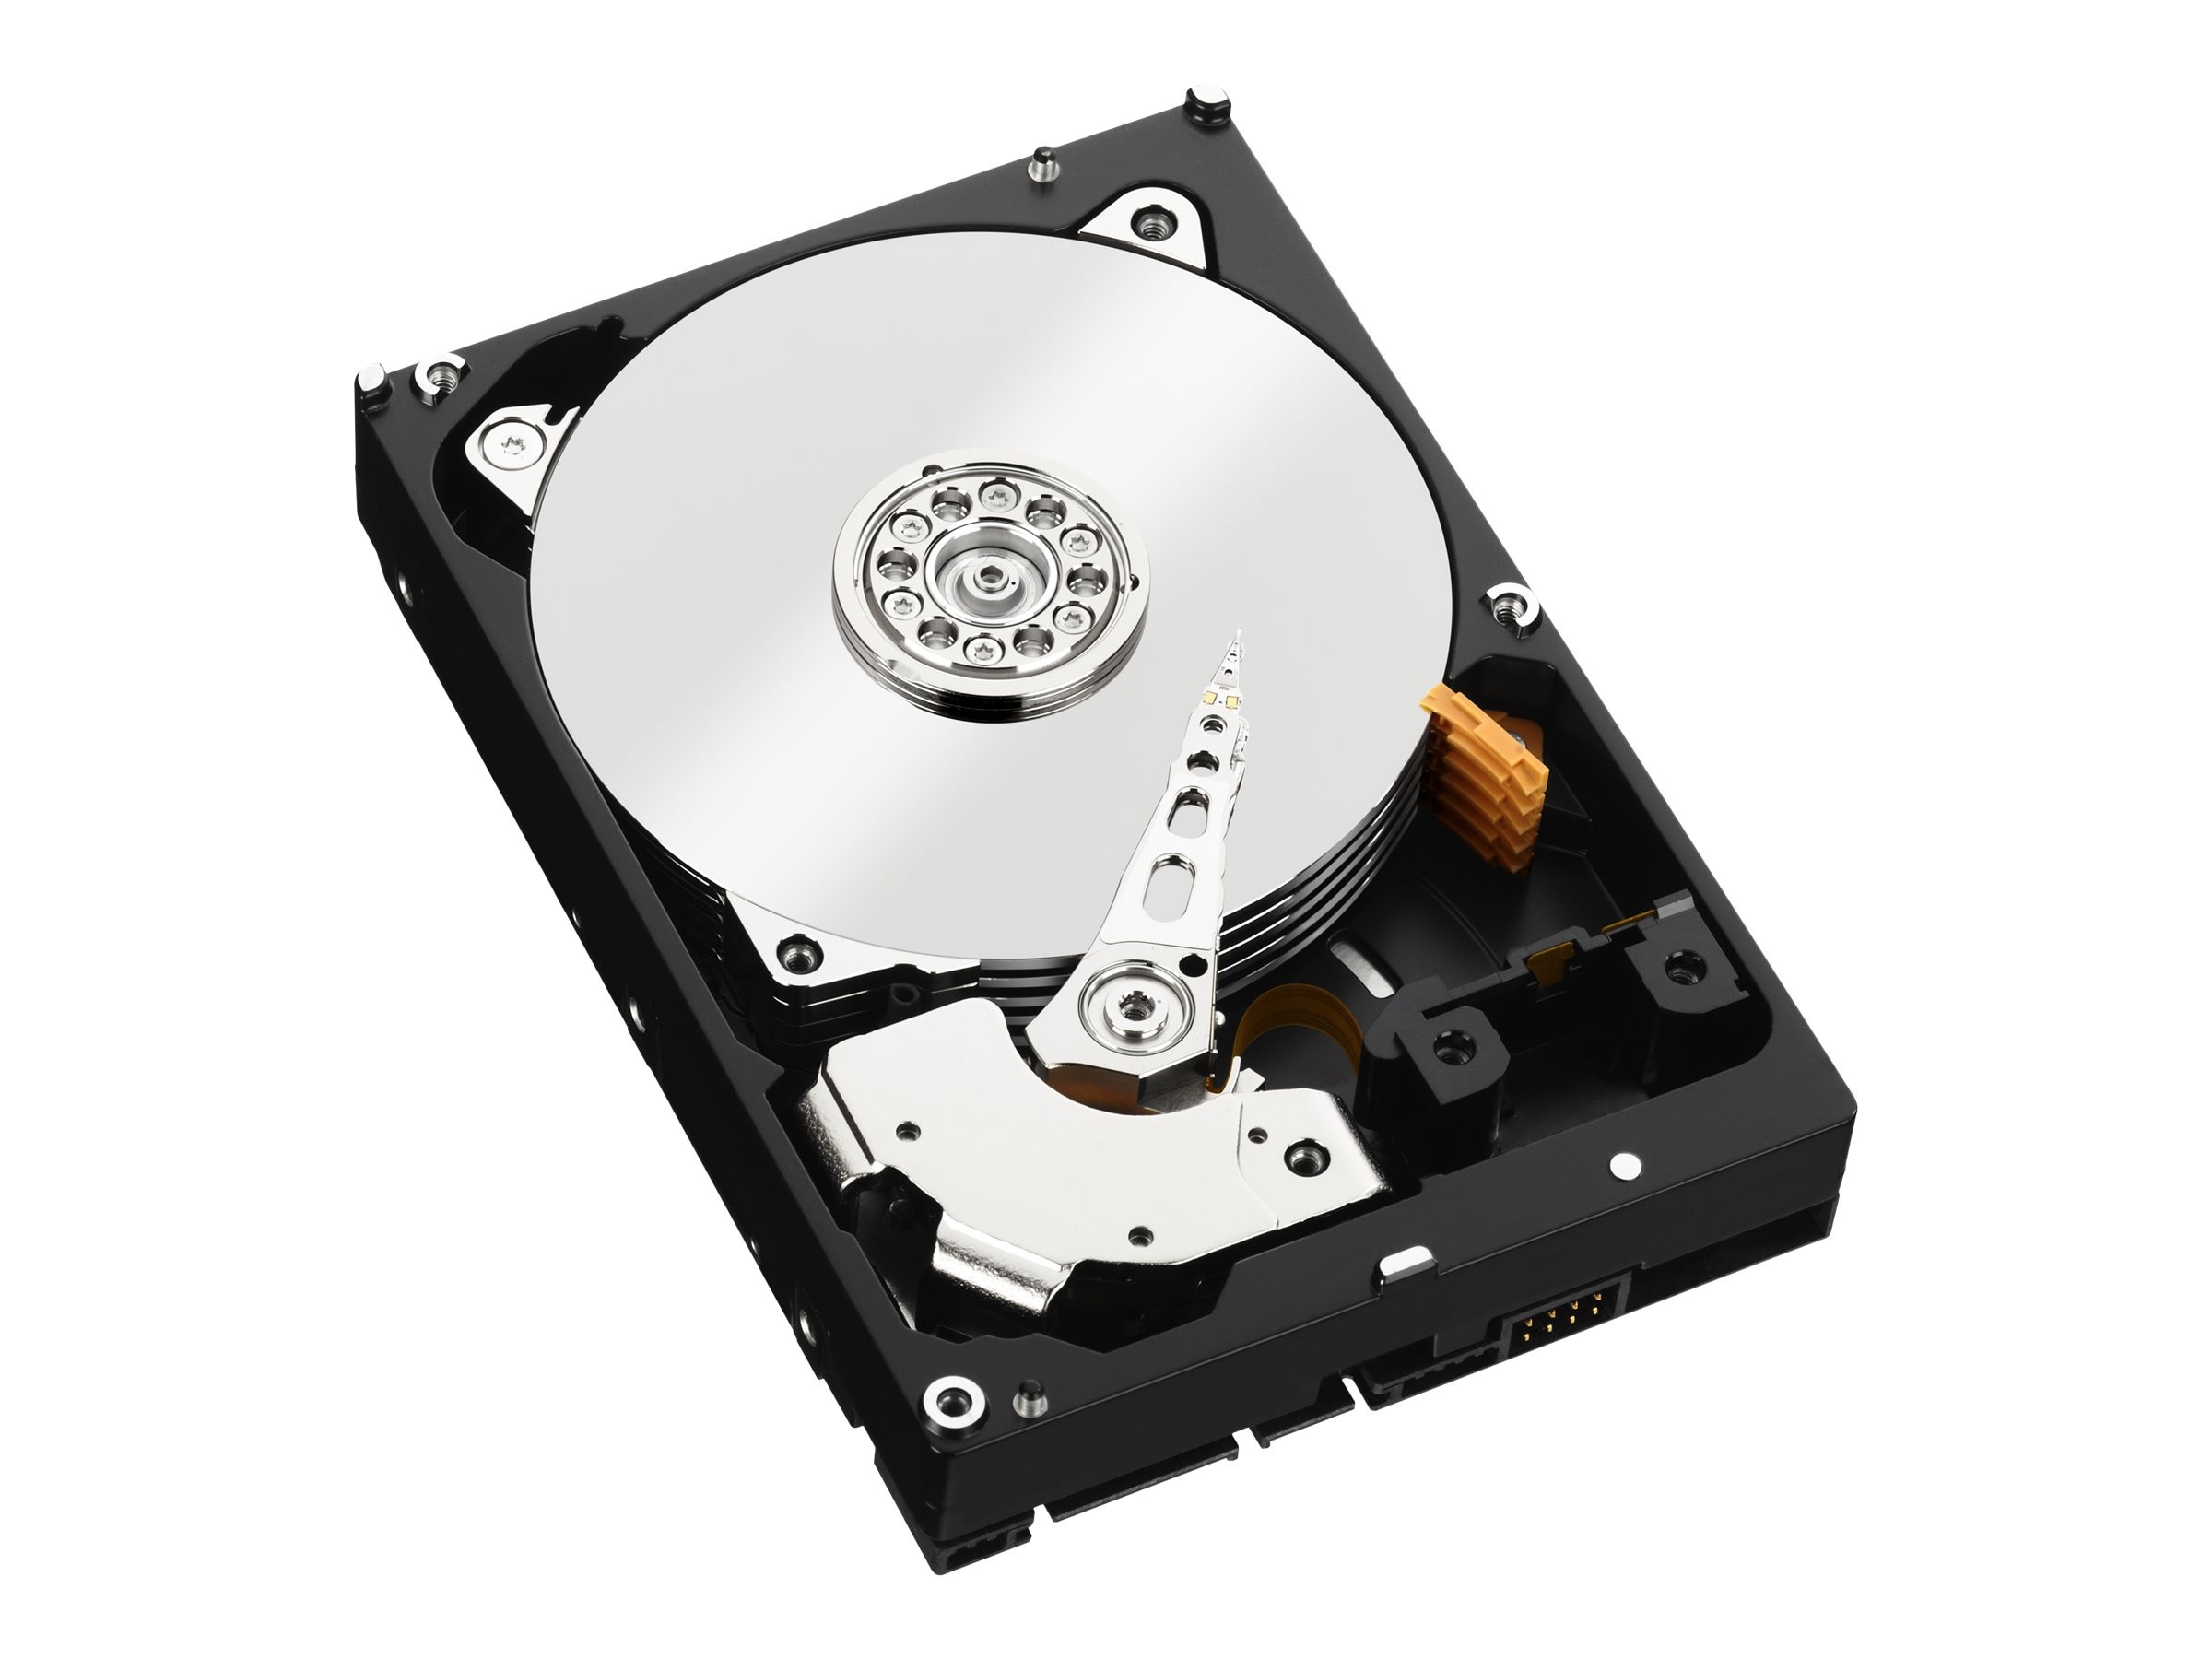 WD 500GB WD RE SATA 6Gb s 3.5 Internal Hard Drive - 64MB Cache, WD5003ABYZ